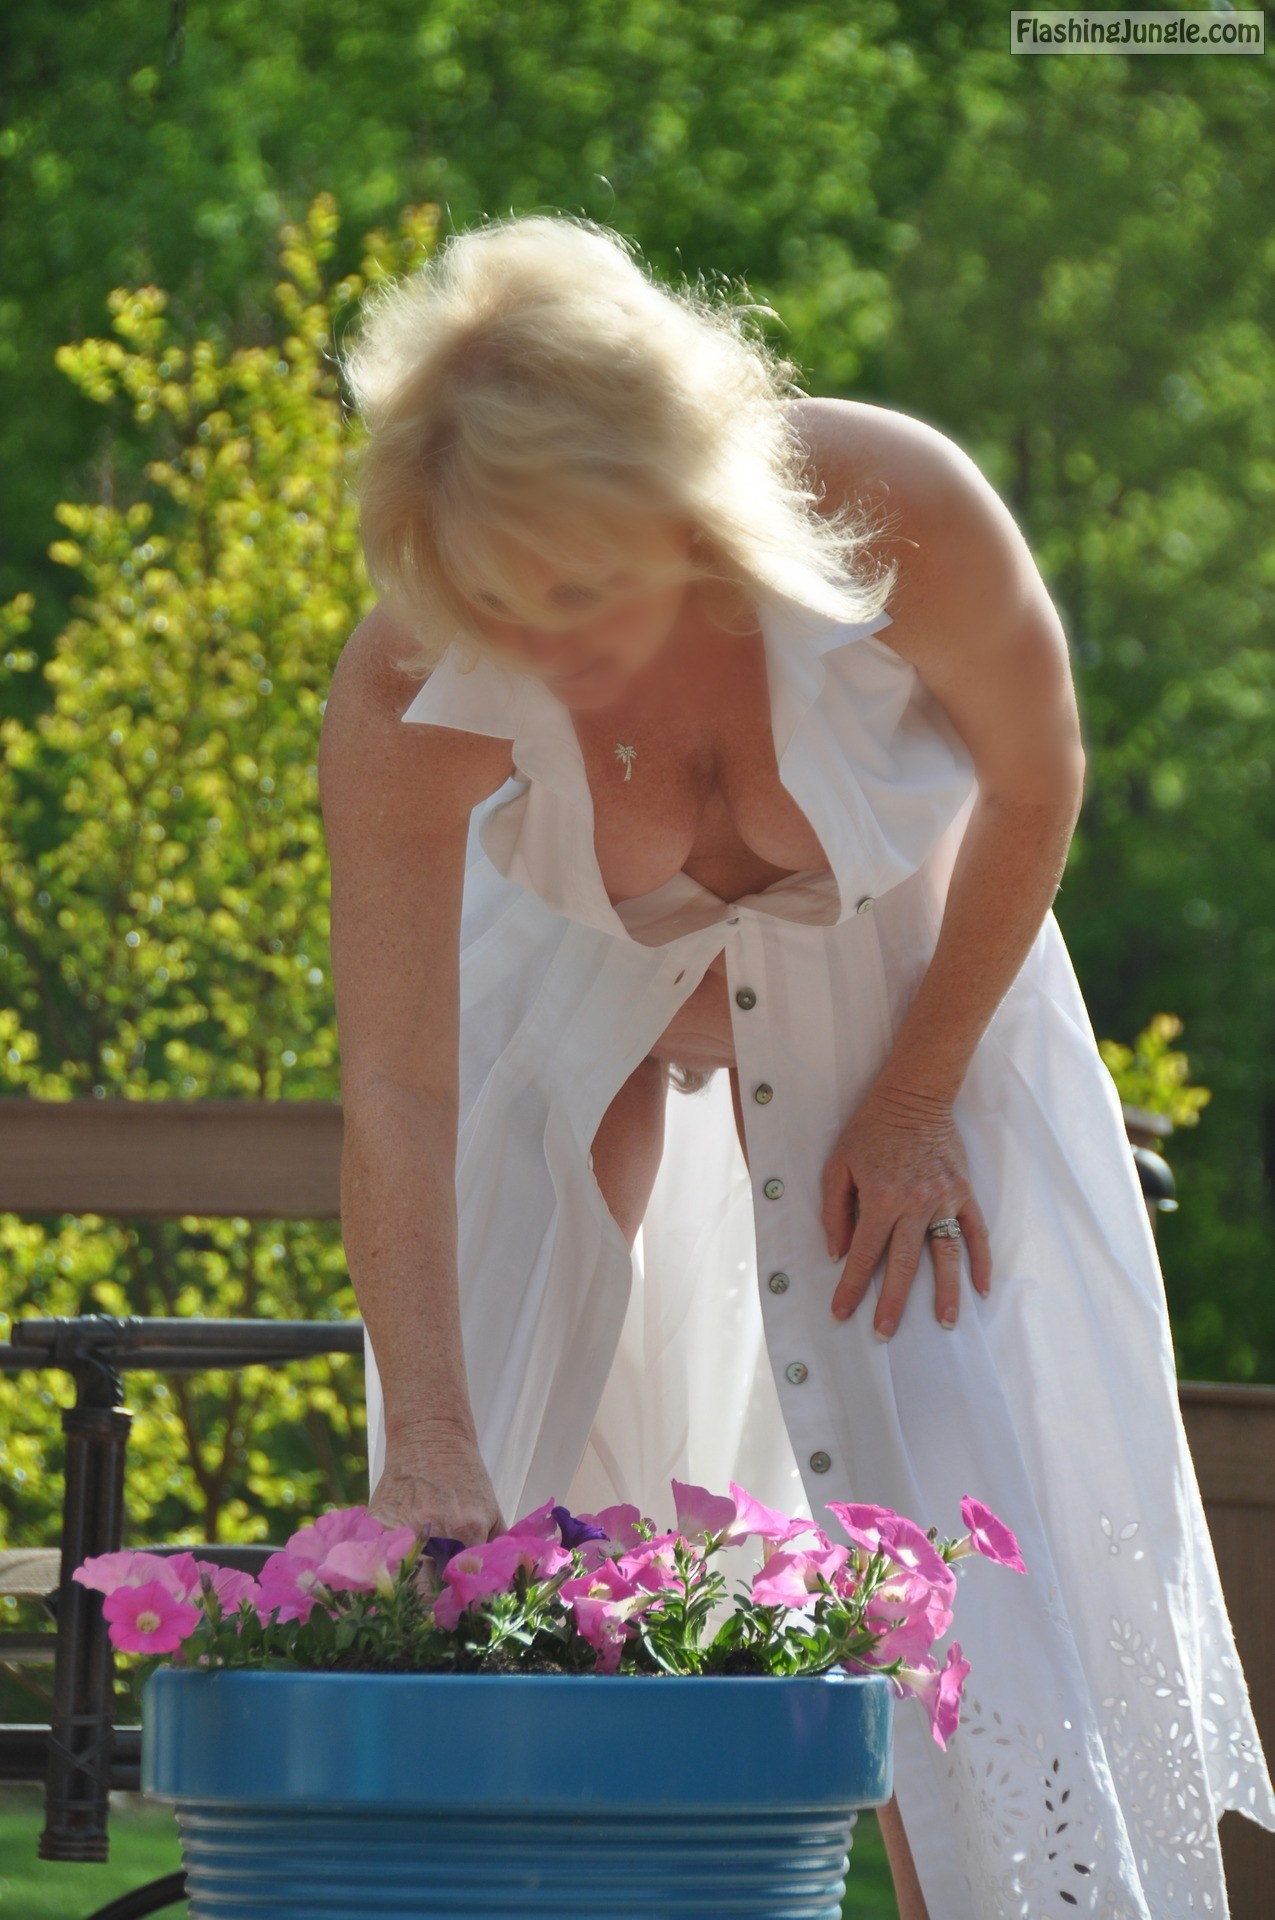 Voyeur shot – neighbor's wife in garden no underwear public flashing